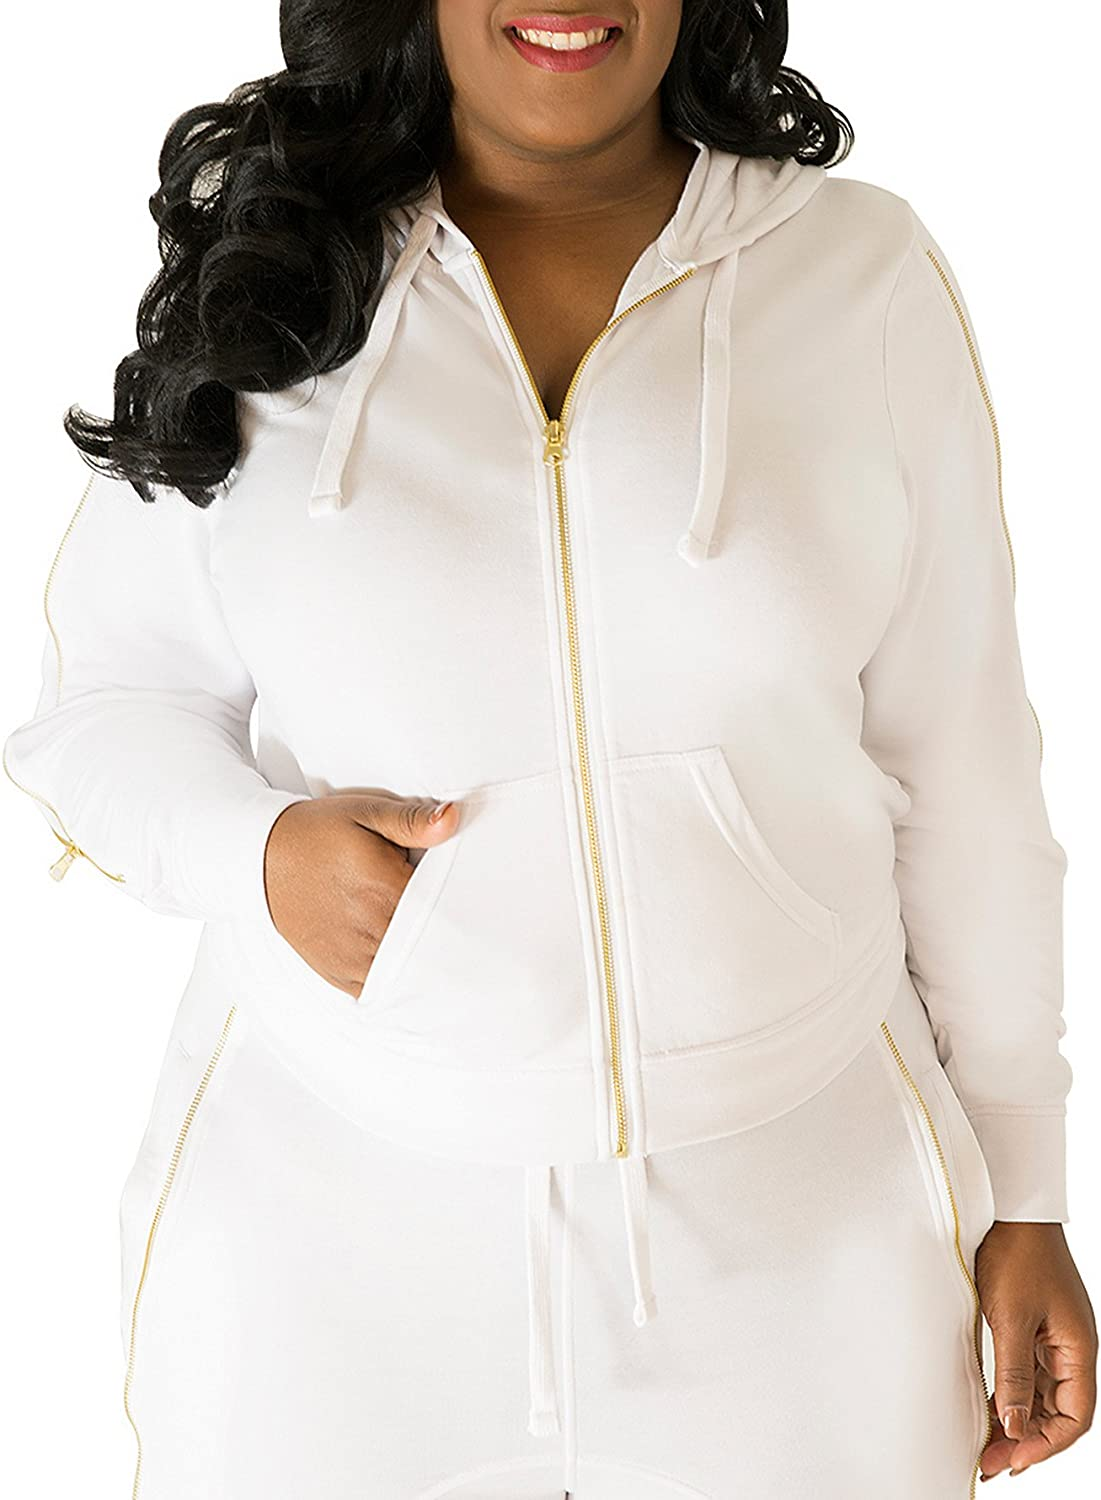 Poetic Justice Plus Size Women's White French Terry Gold Zip Wrap Tie Hoodie